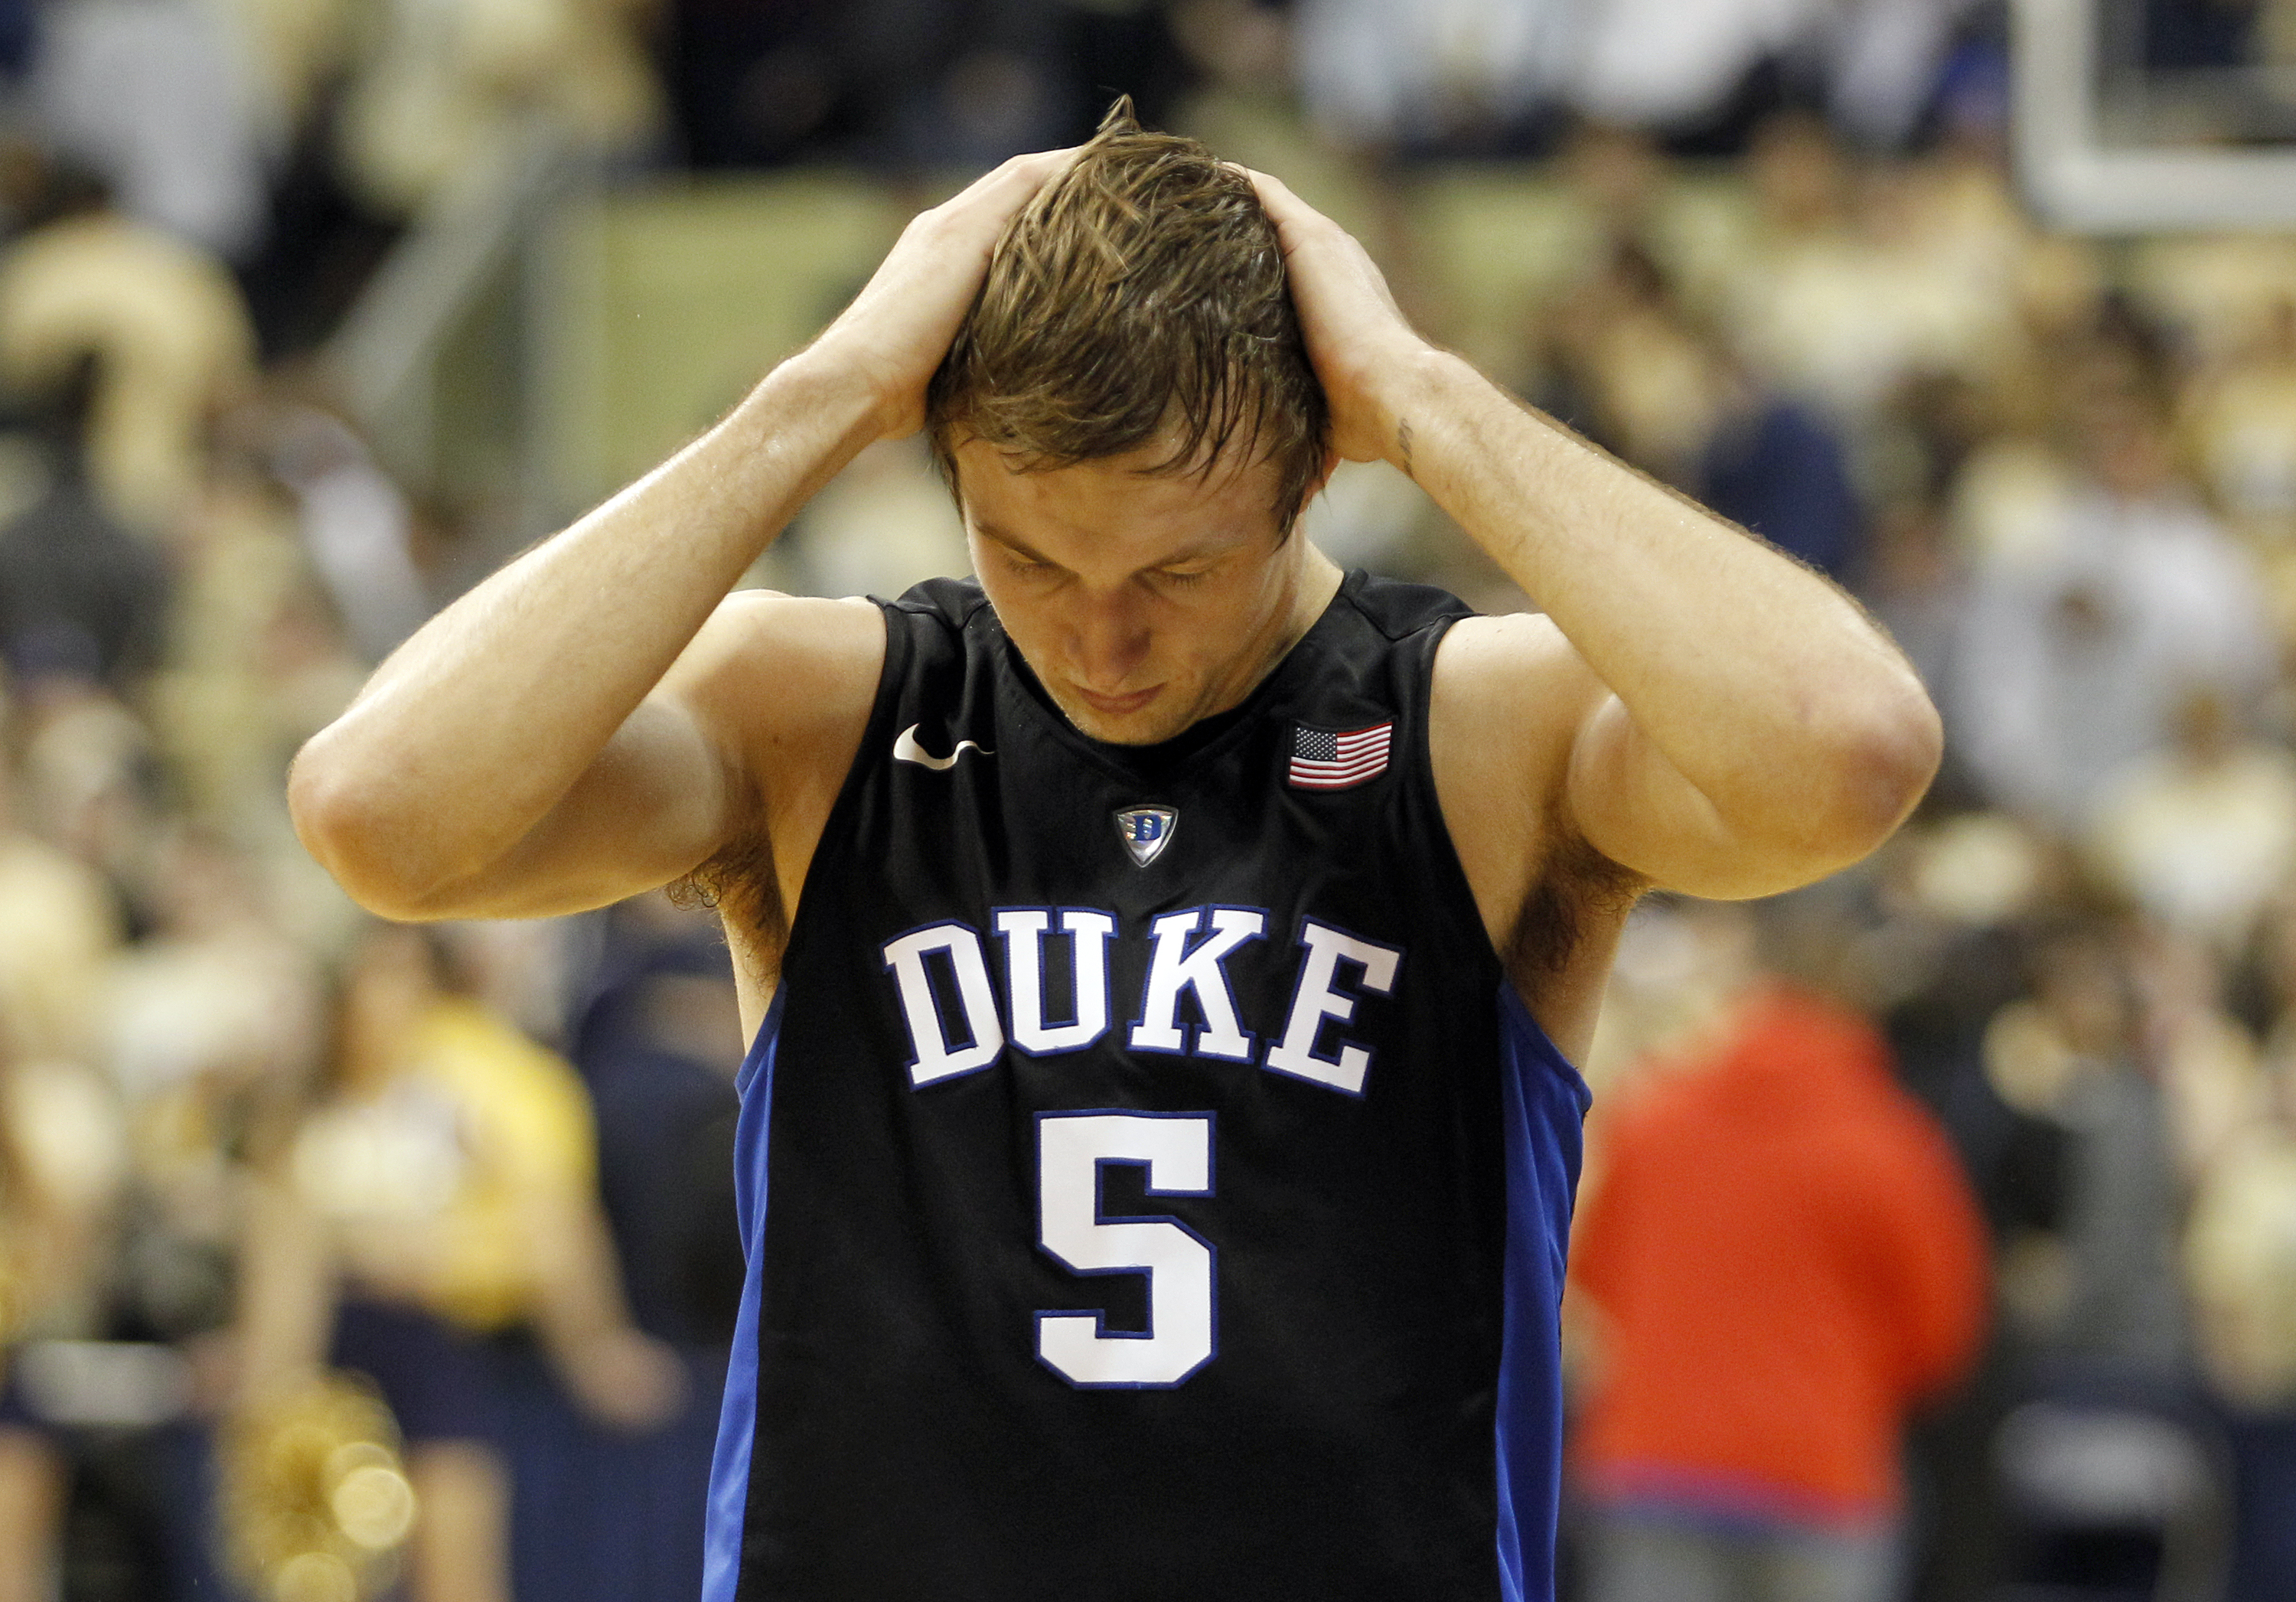 PITTSBURGH, PA - FEBRUARY 28:  Luke Kennard #5 of the Duke Blue Devils reacts after losing 76-62 to the Pittsburgh Panthers during the game at Petersen Events Center on February 28, 2016 in Pittsburgh, Pennsylvania.  (Photo by Justin K. Aller/Getty Images)